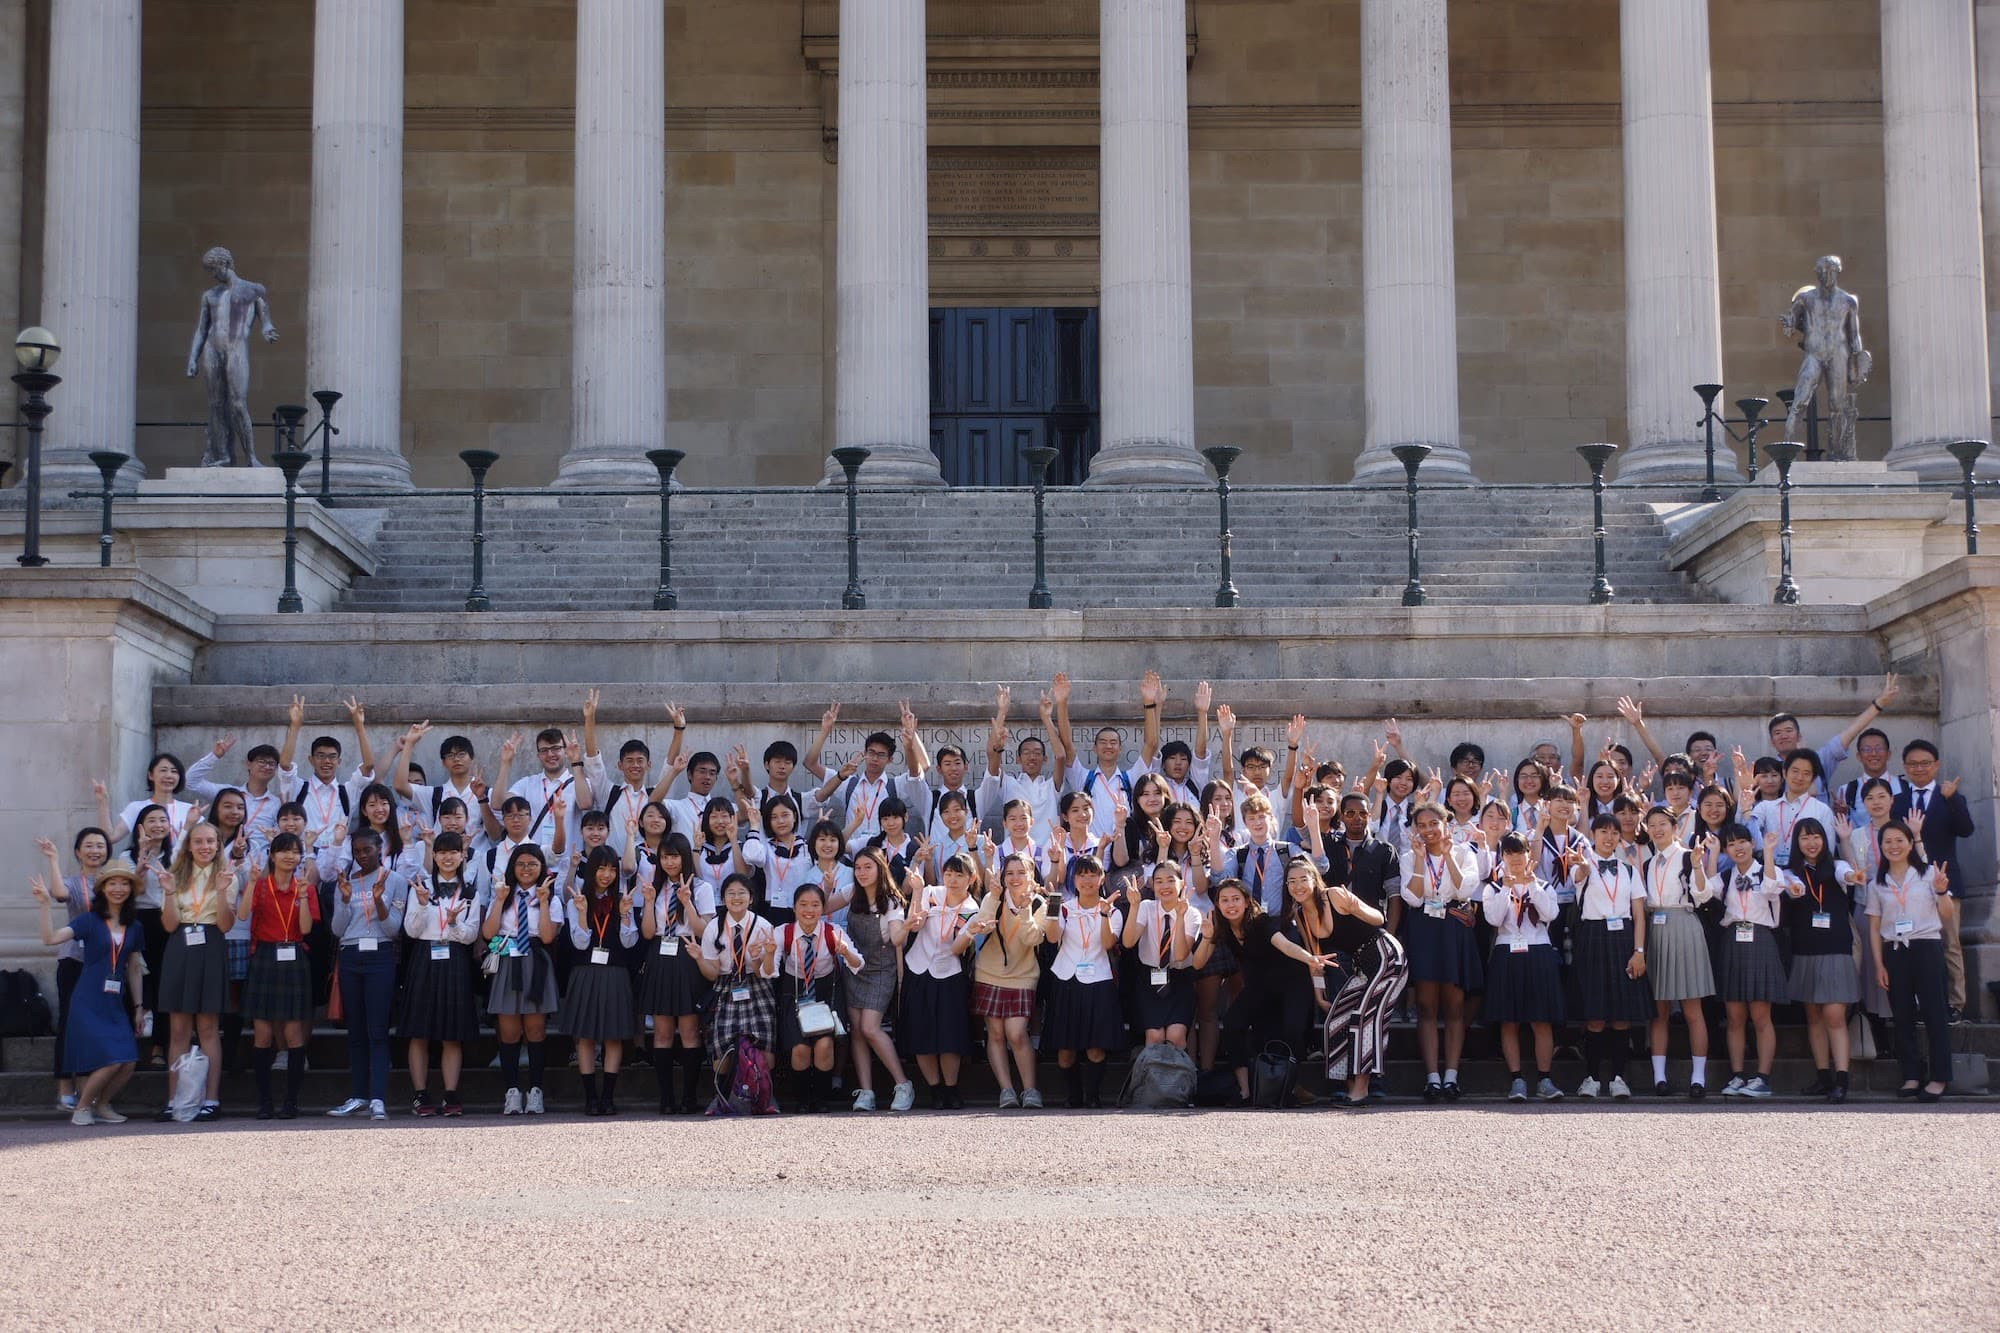 UCL-Japan Youth Challenge 2019 participants in front of UCL main building in close-up